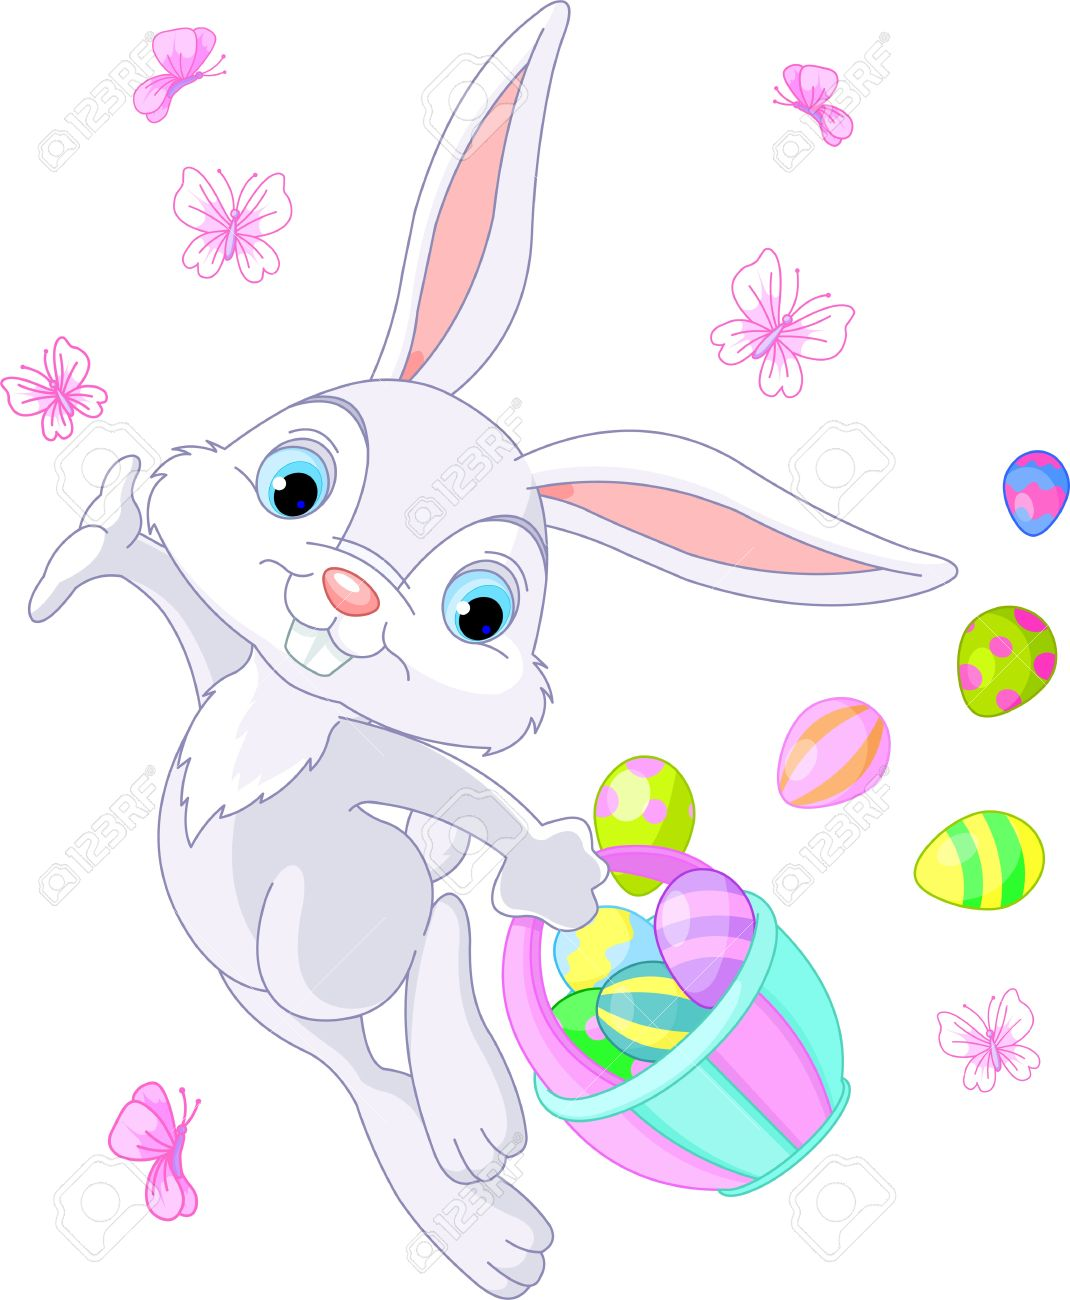 Illustration Of Easter Bunny Hiding Eggs Royalty Free Cliparts.